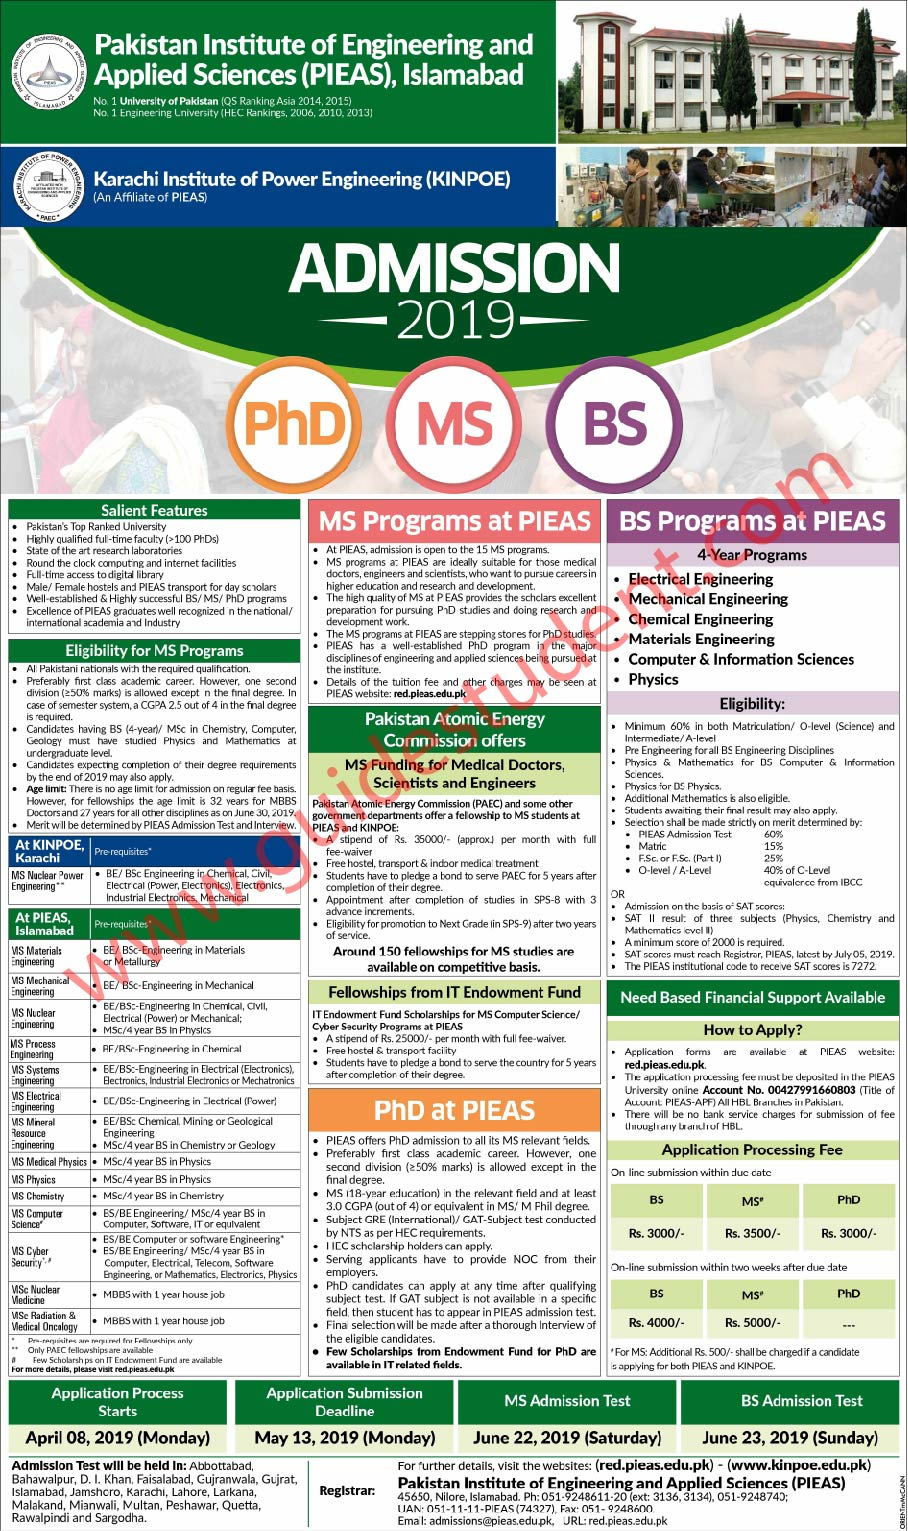 PIEAS University Islamabad Admission Fall 2019 | guidestudent